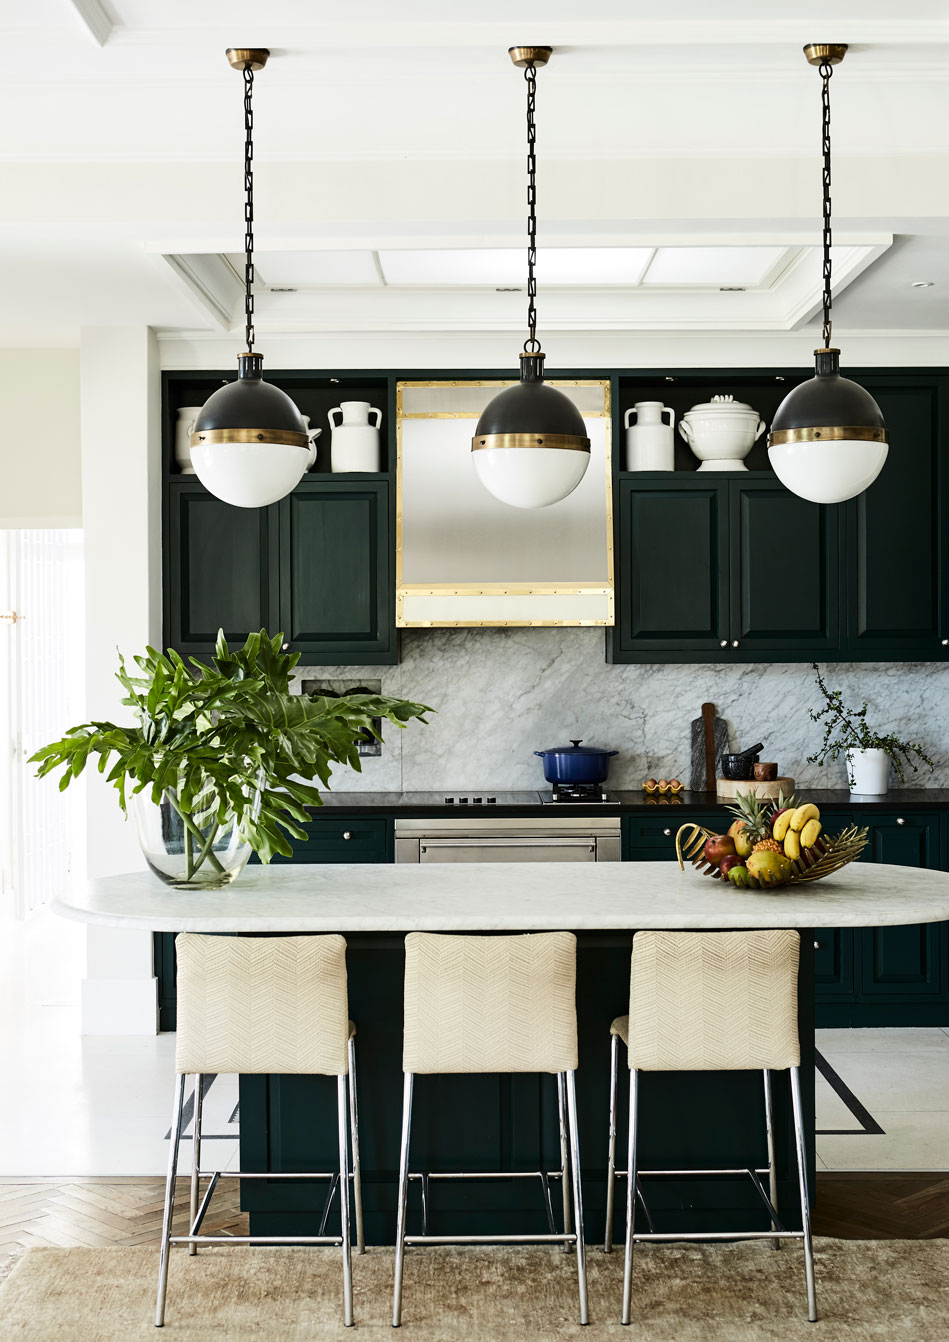 The built-in kitchen cabinetry is painted a dark shade of green‭ ‬‮$‬ع‭ ‬an unusual choice that forms a lovely counterpoint to the charcoal-grey mantelpiece and fireplace on the other side of this large‭, ‬open-plan room‭. ‬The joinery is by Nicolwood Custom Made Furniture‭ & ‬Kitchens in Wynberg‭, ‬Cape Town‭ (‬021-761-8735‭), ‬and the Hicks pendant hanging lights were sourced in the USA‭ ‬‮$‬ع‭ ‬designed by Thomas O'Brien of Aero Studios‭ (‬aerostudios.com‭), ‬they are fast becoming classics‭. ‬At the marble-topped kitchen island are‭ ‬three custom-made counter stools covered in durable woven raffia‭.‬